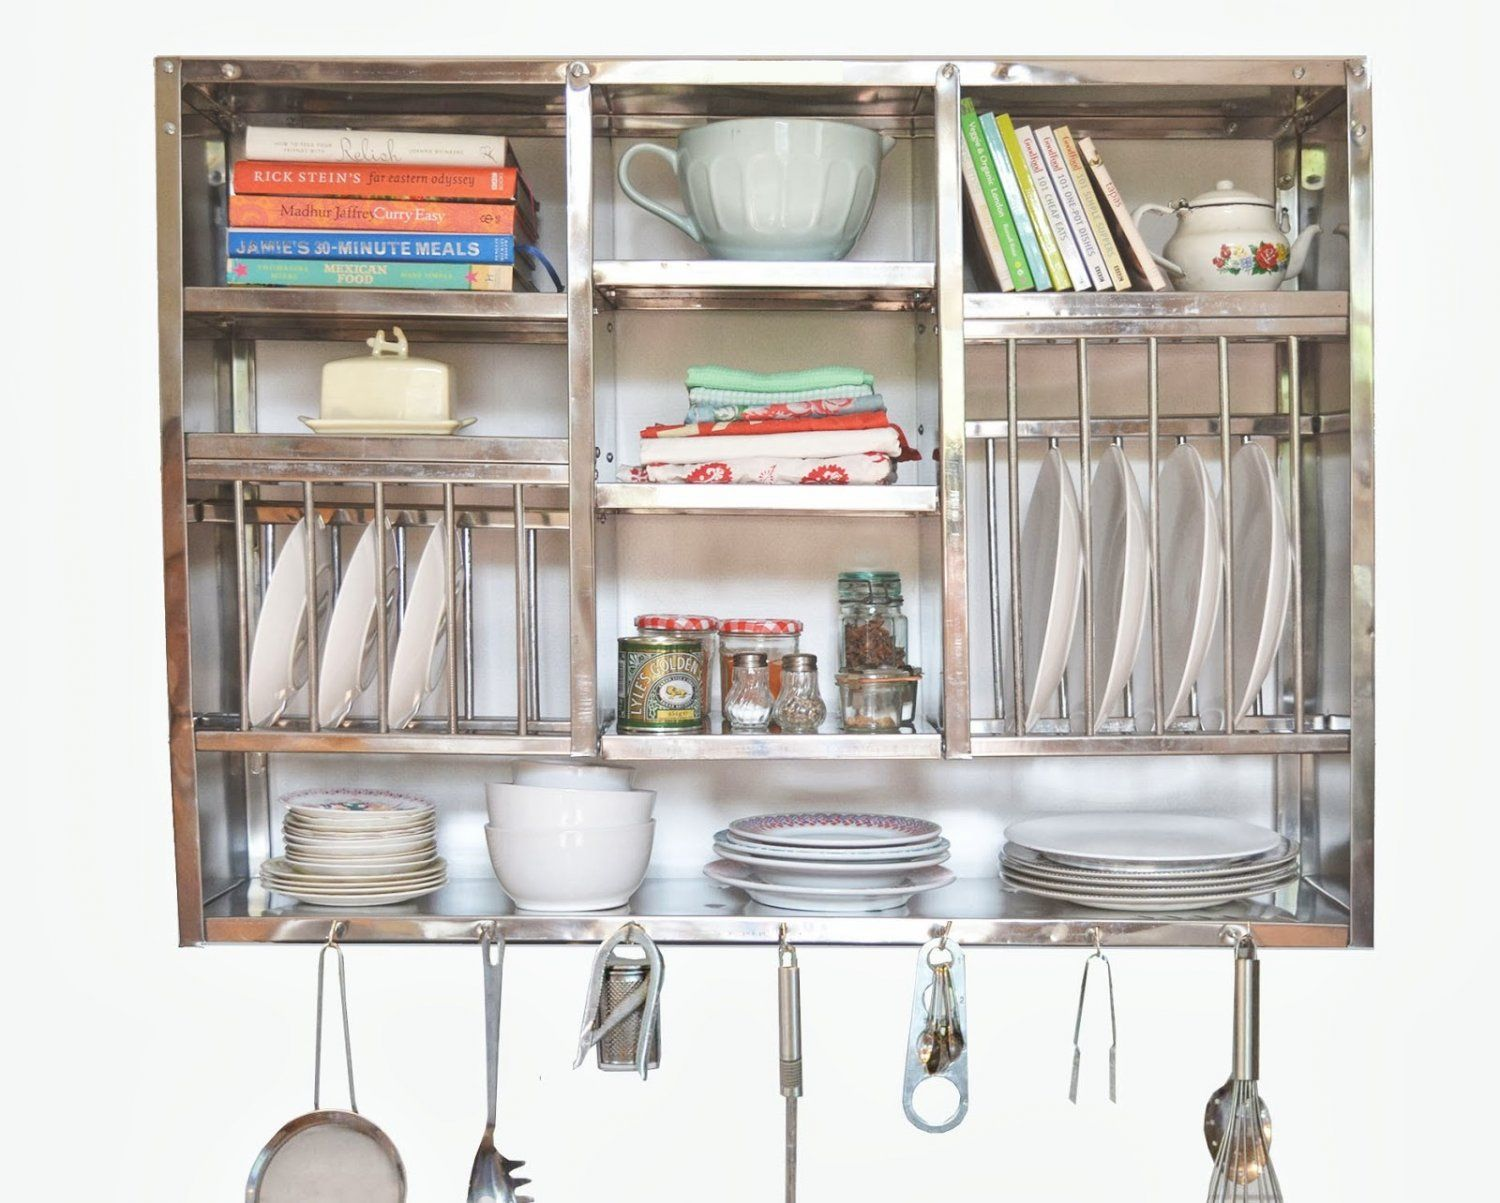 Stainless Steel Kitchen Plate Rack - Wall Hanging (76X24X107 Cm)  sc 1 st  Pinterest & Stainless Steel Kitchen Plate Rack - Wall Hanging (76X24X107 Cm ...